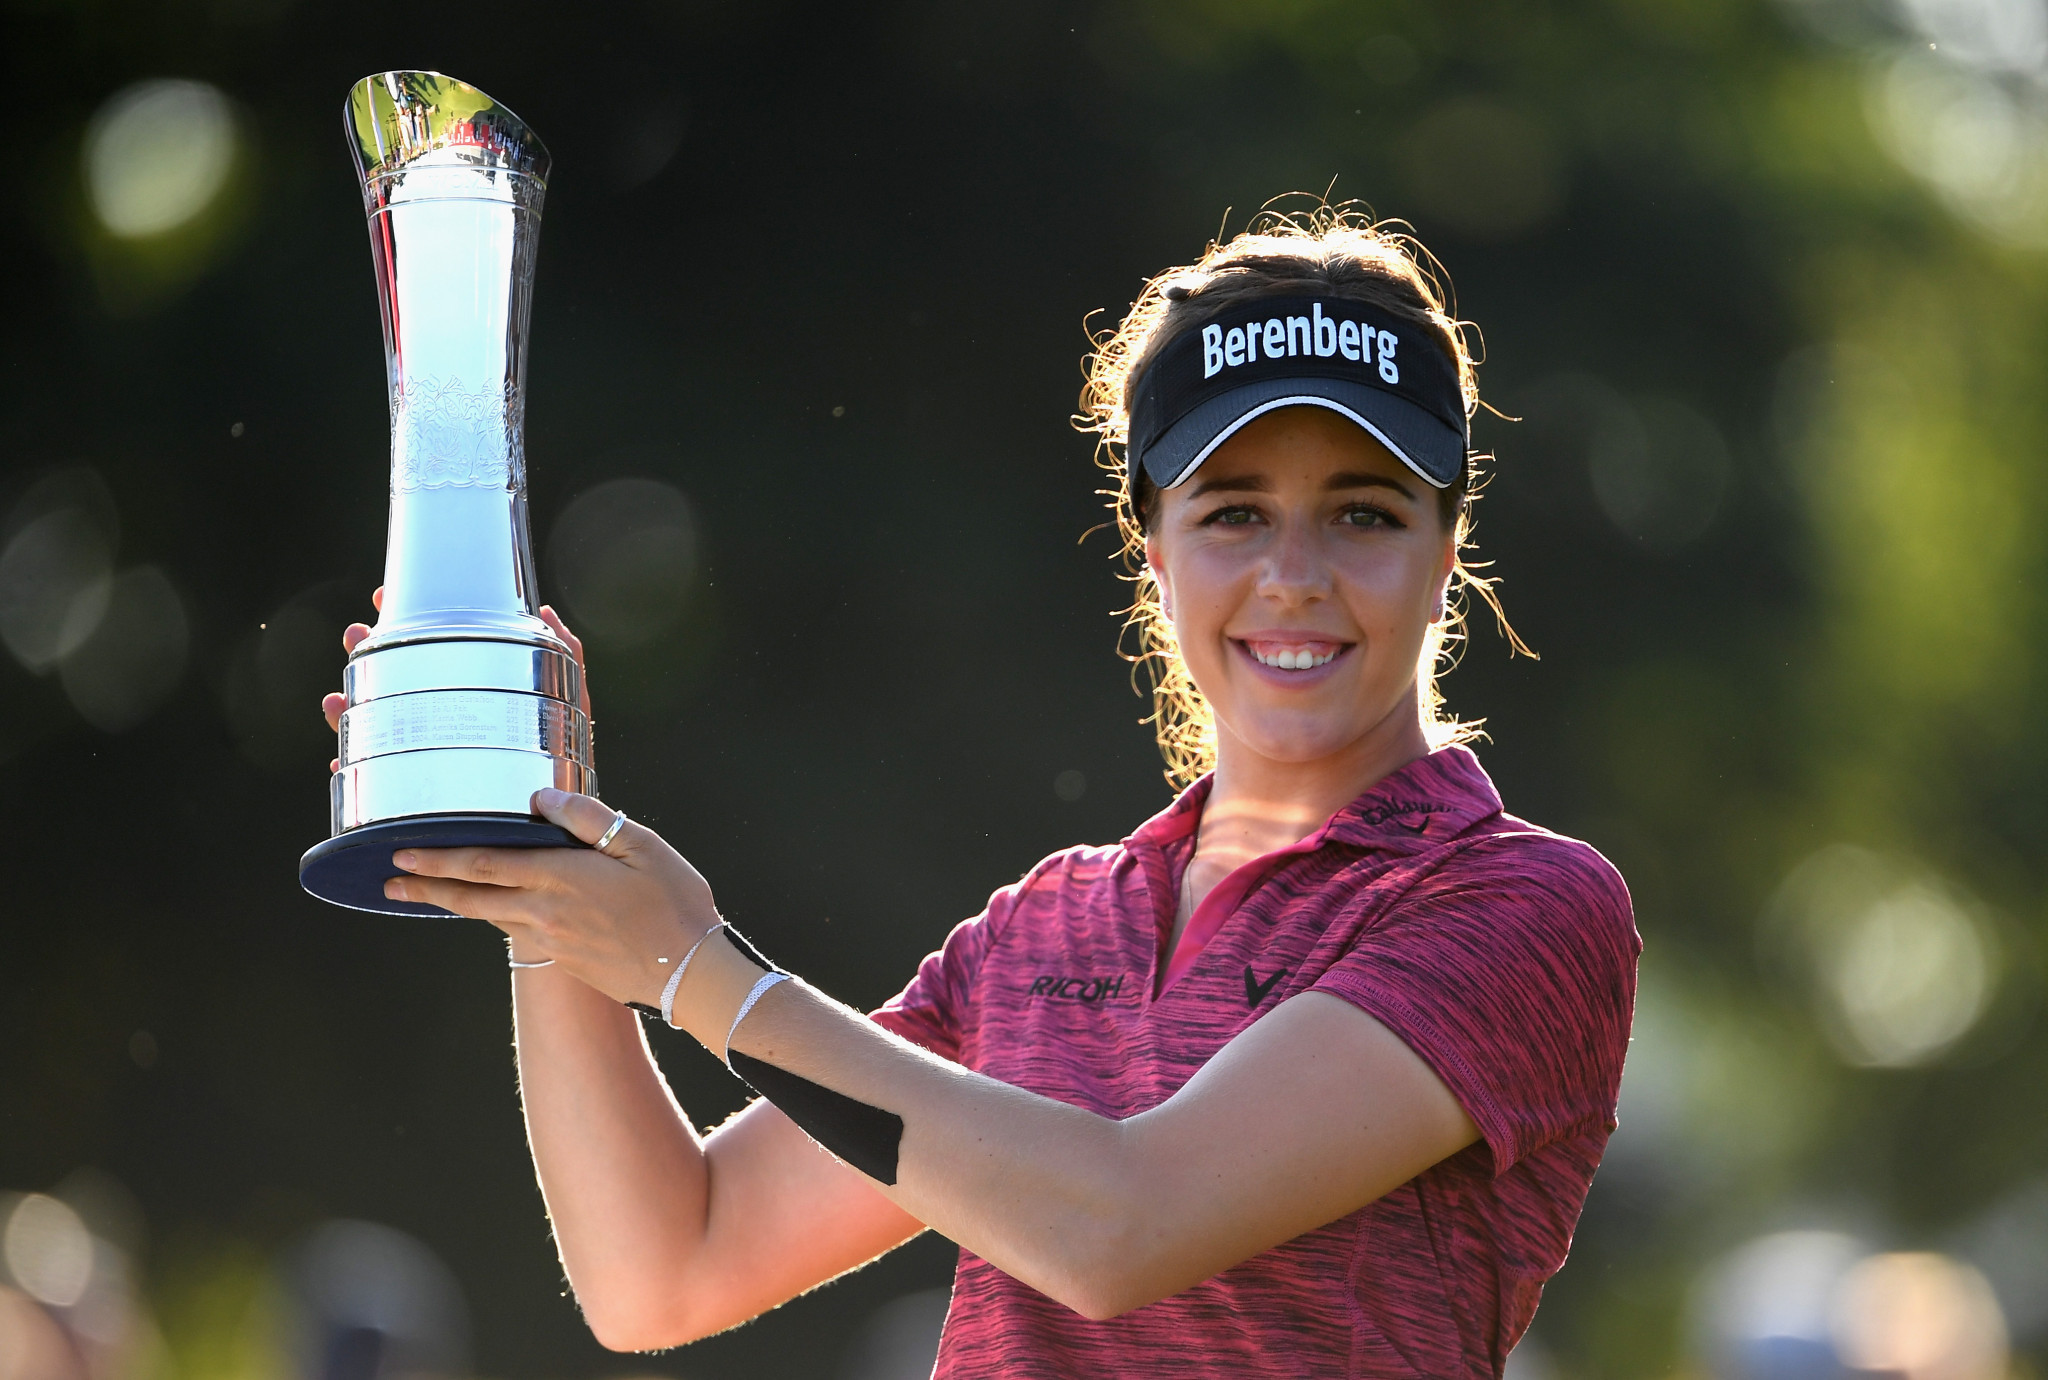 Georgia Hall won the 2018 Women's British Open at Royal Lytham and St Annes ©Getty Images